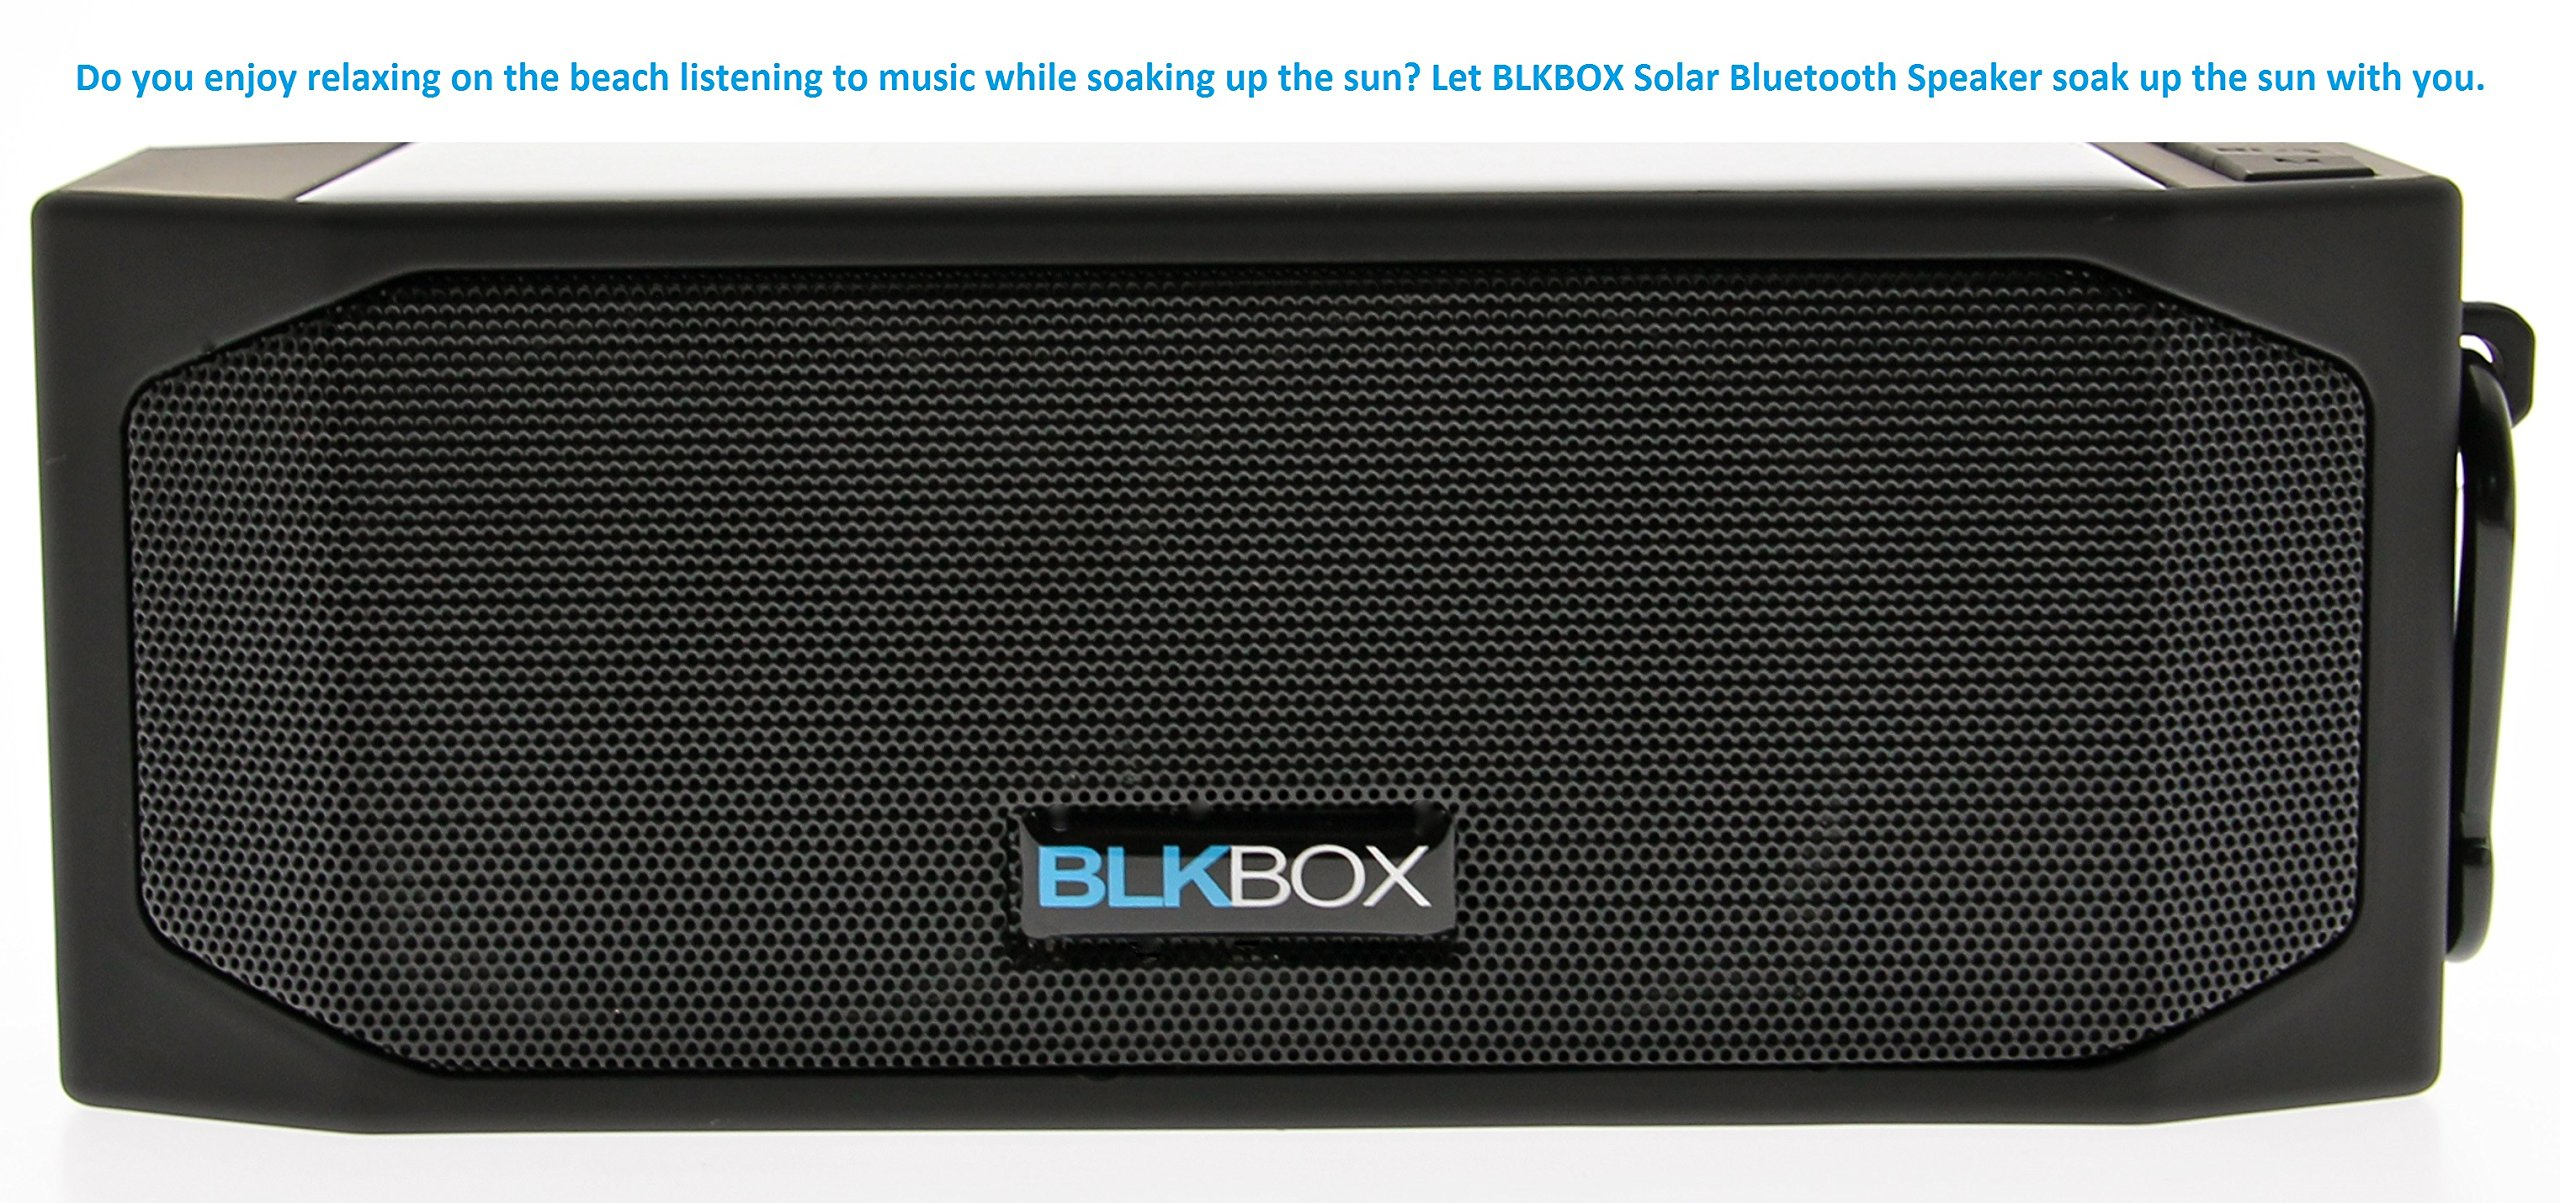 Wireless Solar Bluetooth Speaker for iPhones, iPads, Androids, Samsung and all Phones, Tablets, Computers (Black)